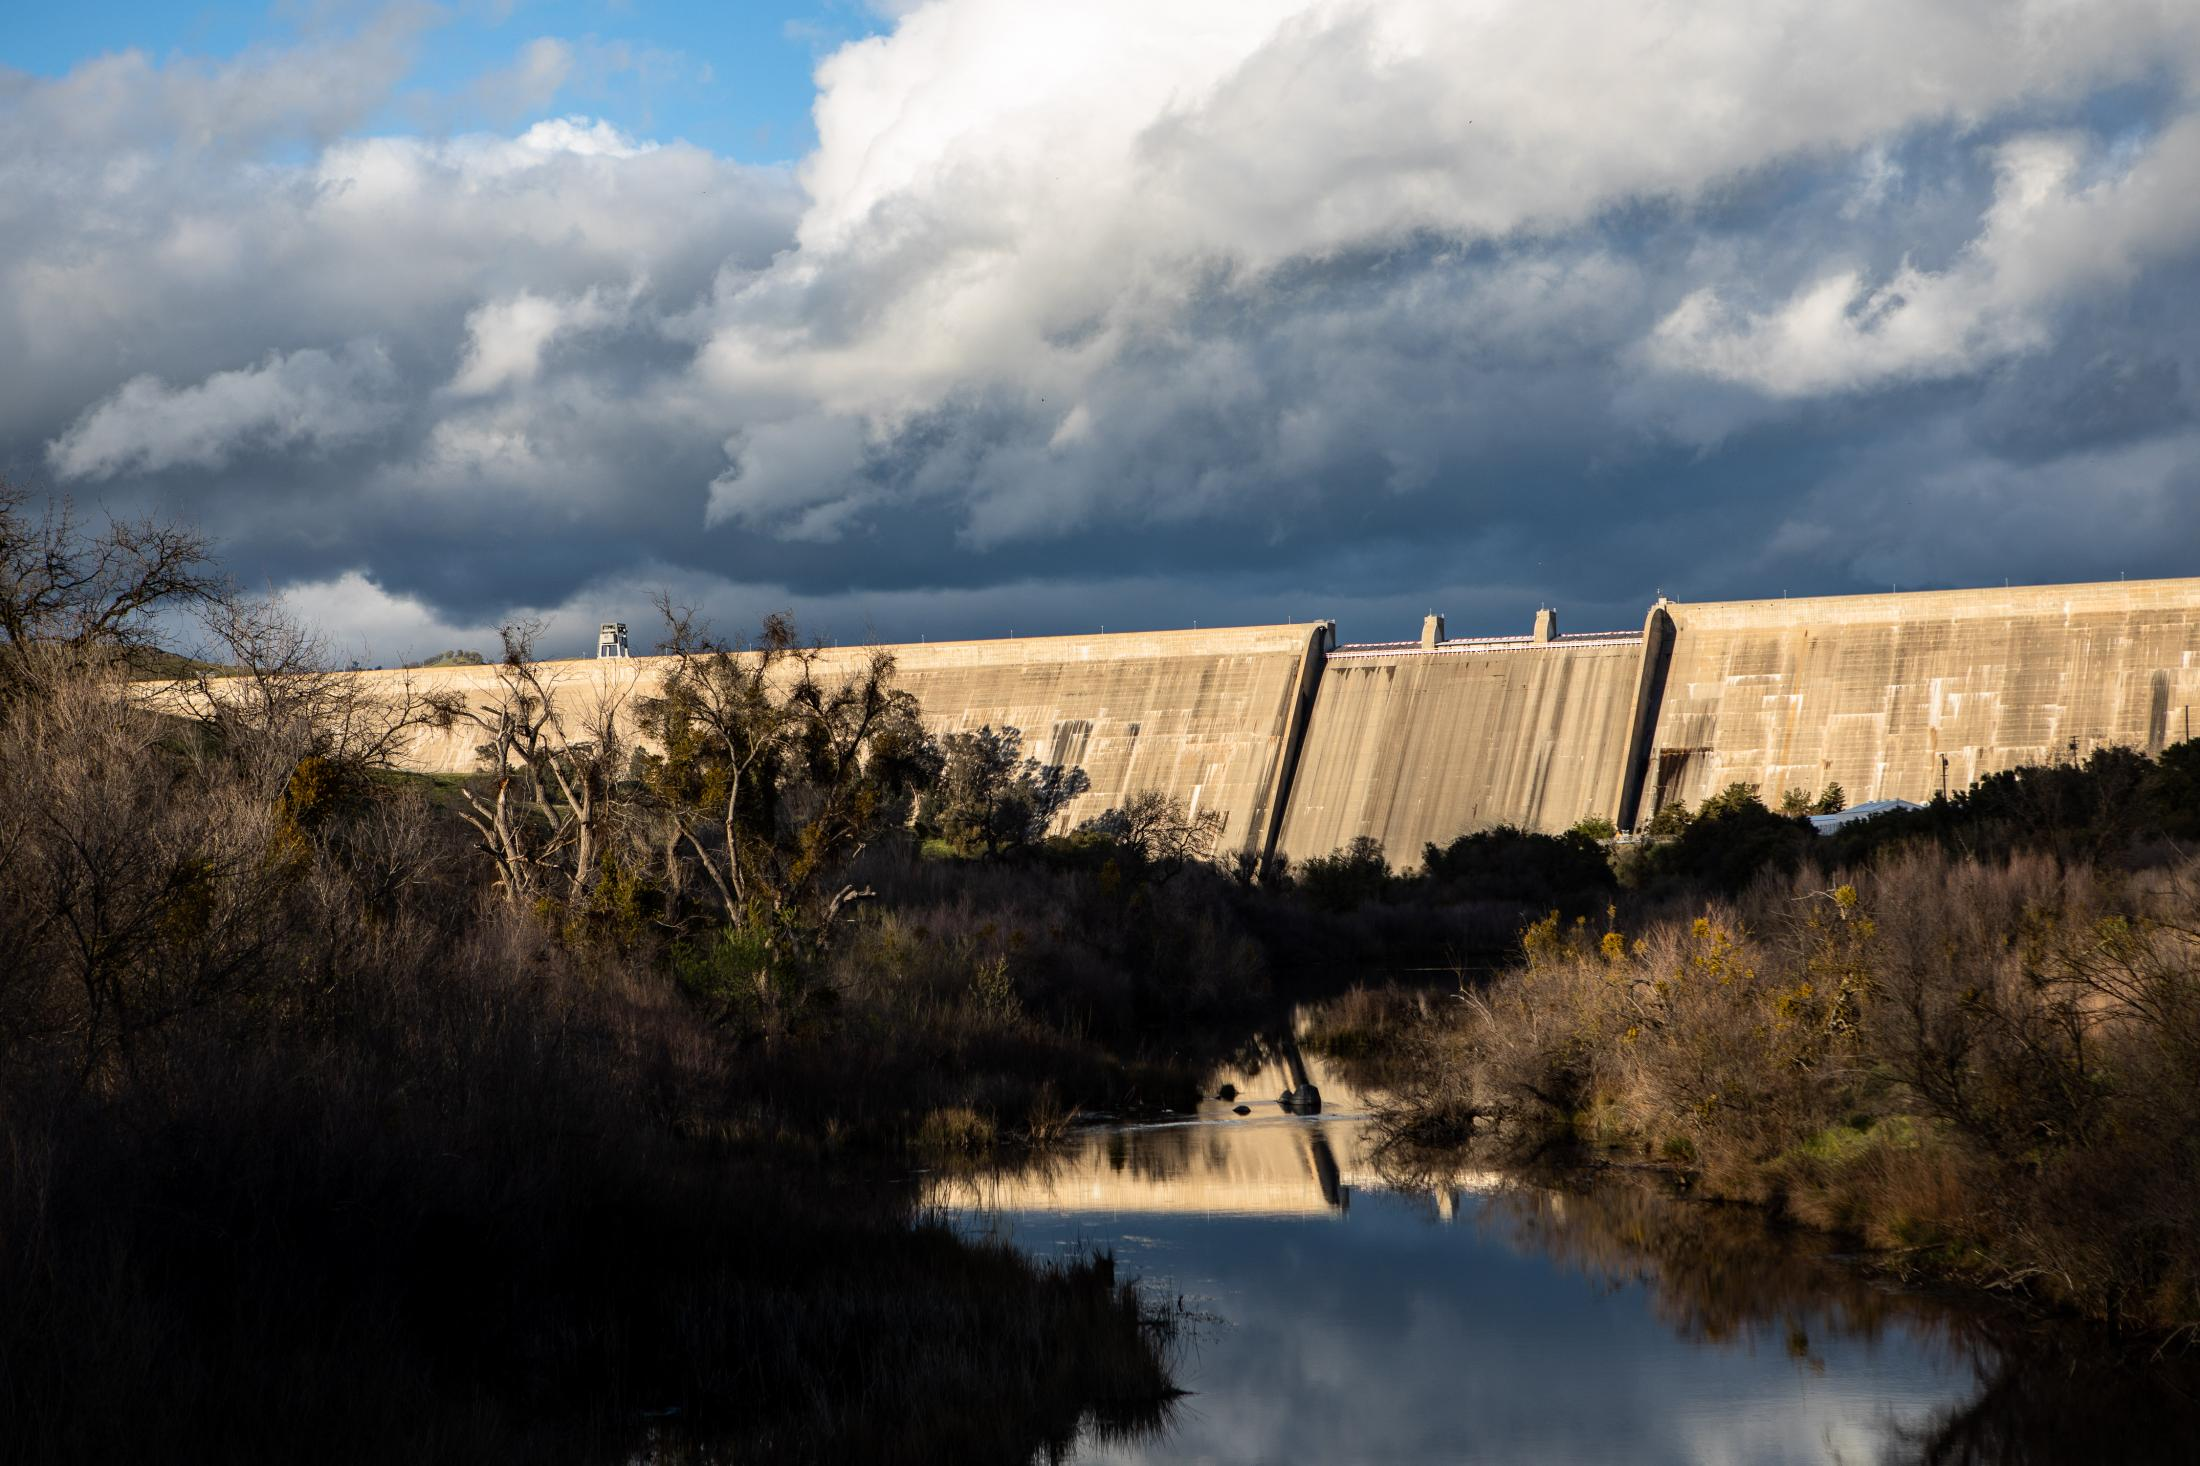 The Friant dam as clouds pass over- Constructed just after the Great Depression, Friant Dam was devised to control the San Joaquin River.